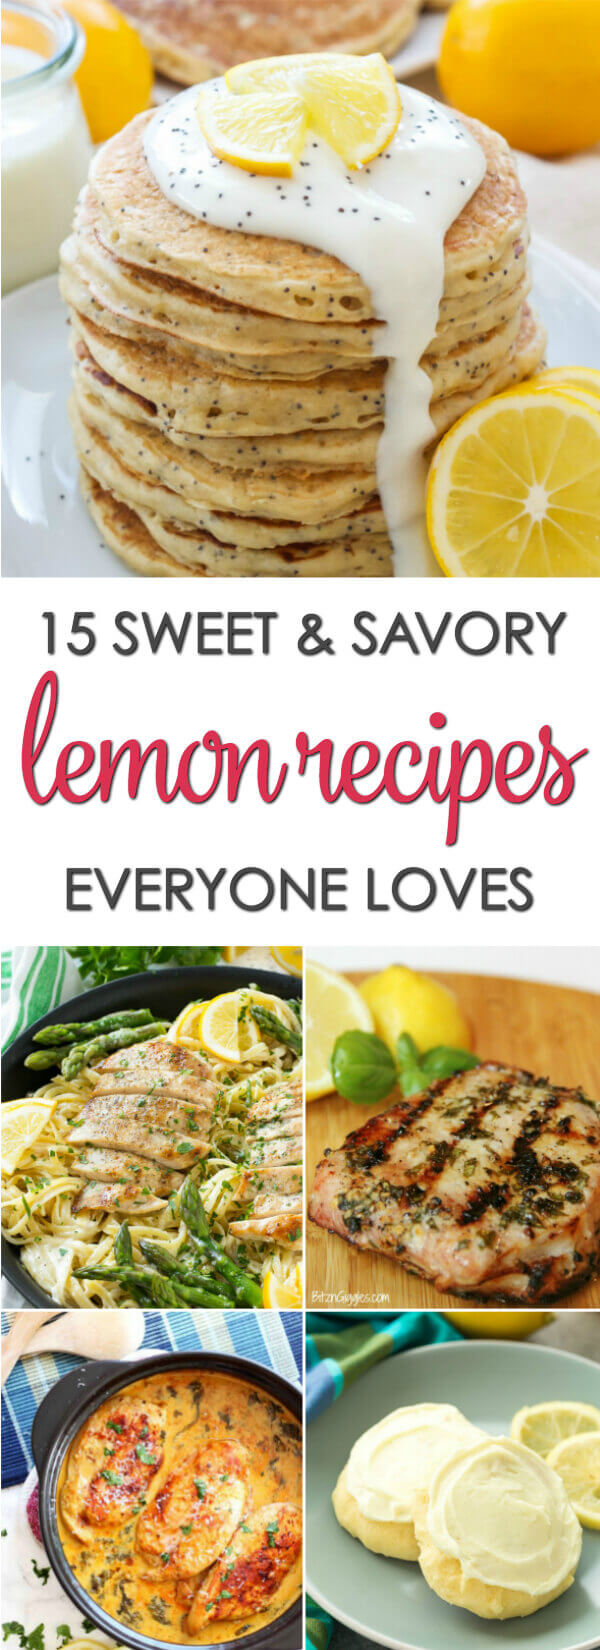 15 Easy Lemon Recipes - everything from lemon desserts recipes to savory lemon recipes